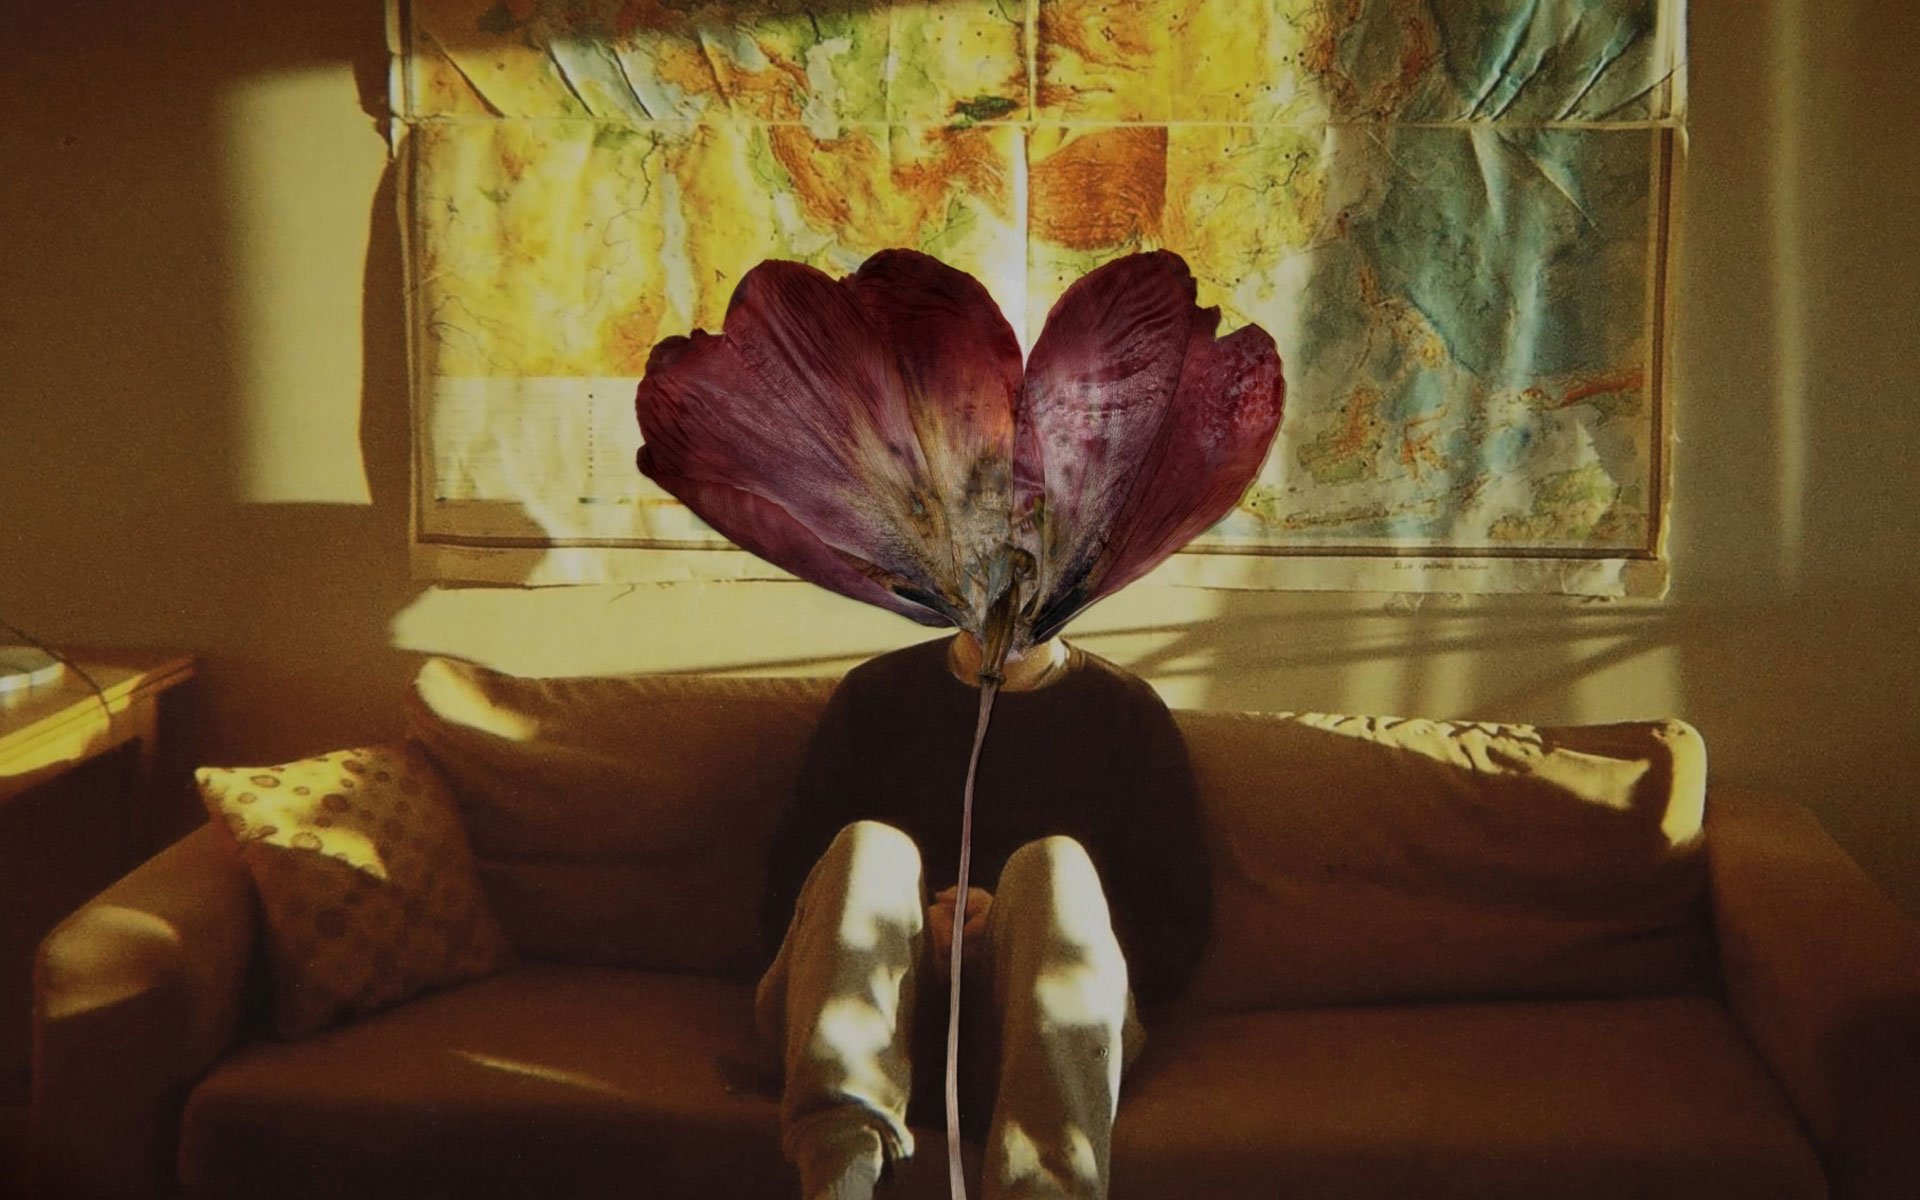 One photographer gives herself permission to remember lost love